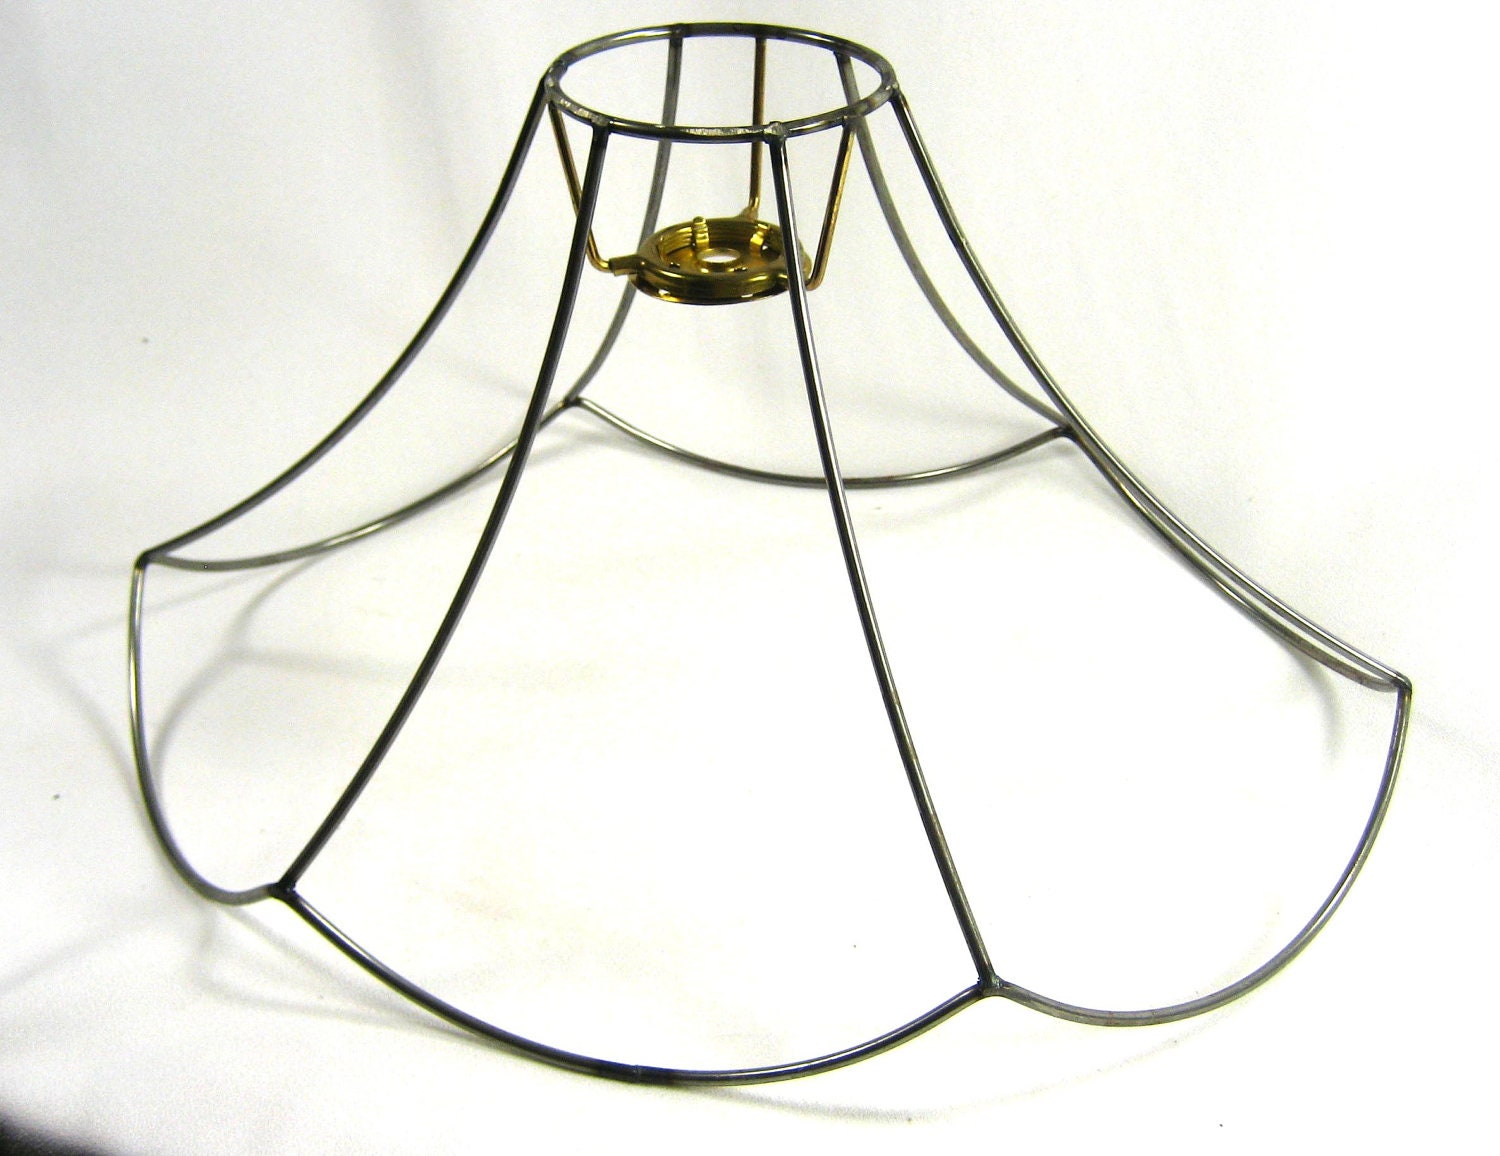 Table lamp wire size phillips collection pebble side table copper table lamp wire size lampshade frame wire medium size for table or bridge lamp keyboard keysfo Gallery